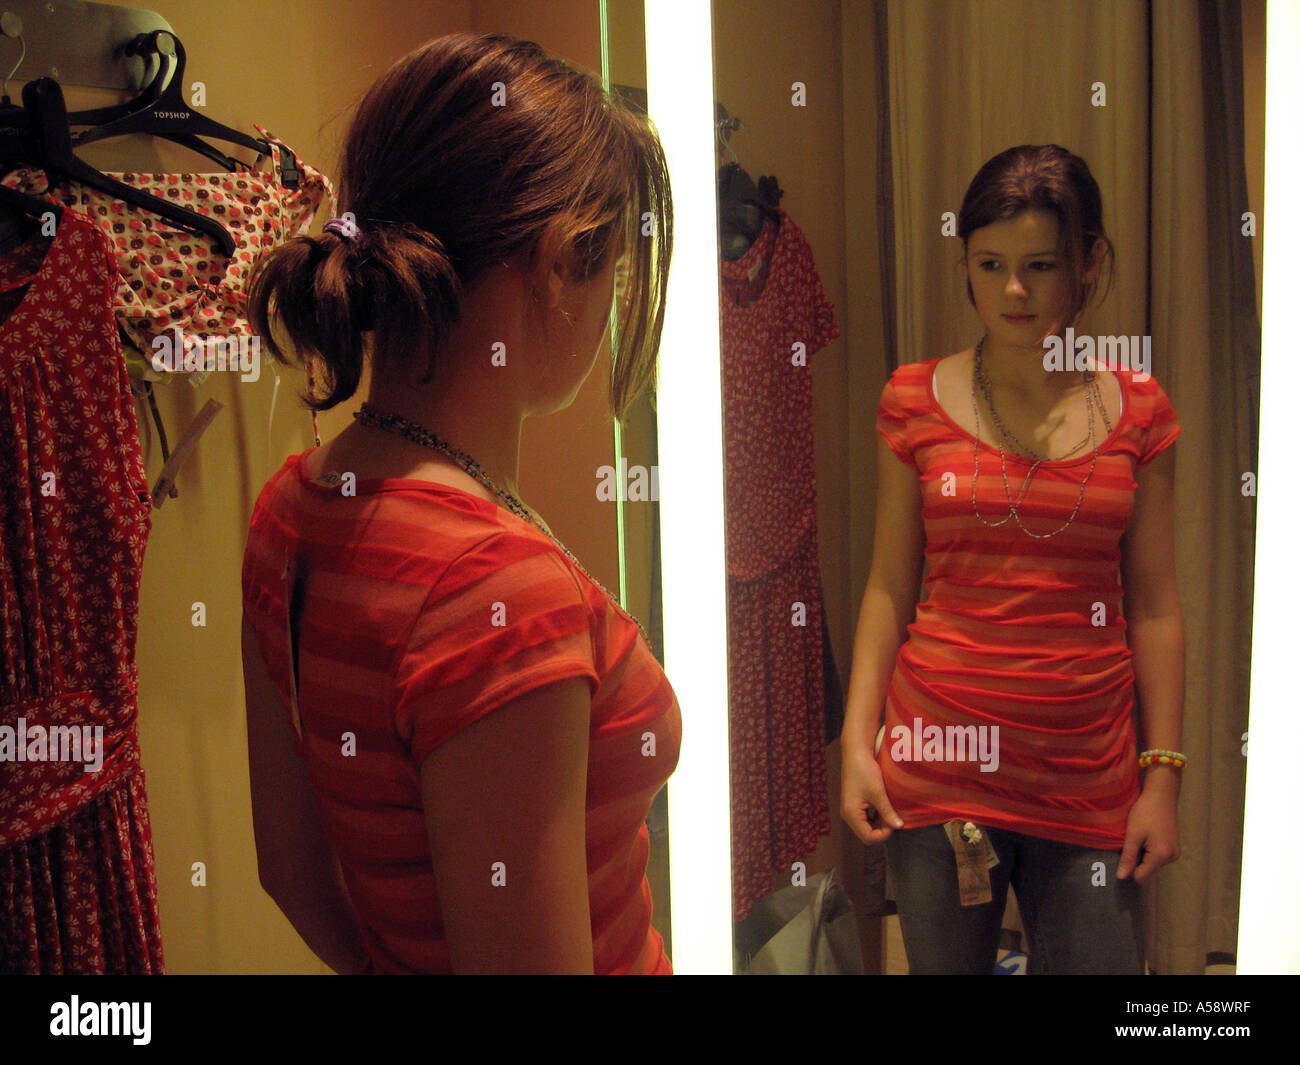 Teen Girl Changing Clothes